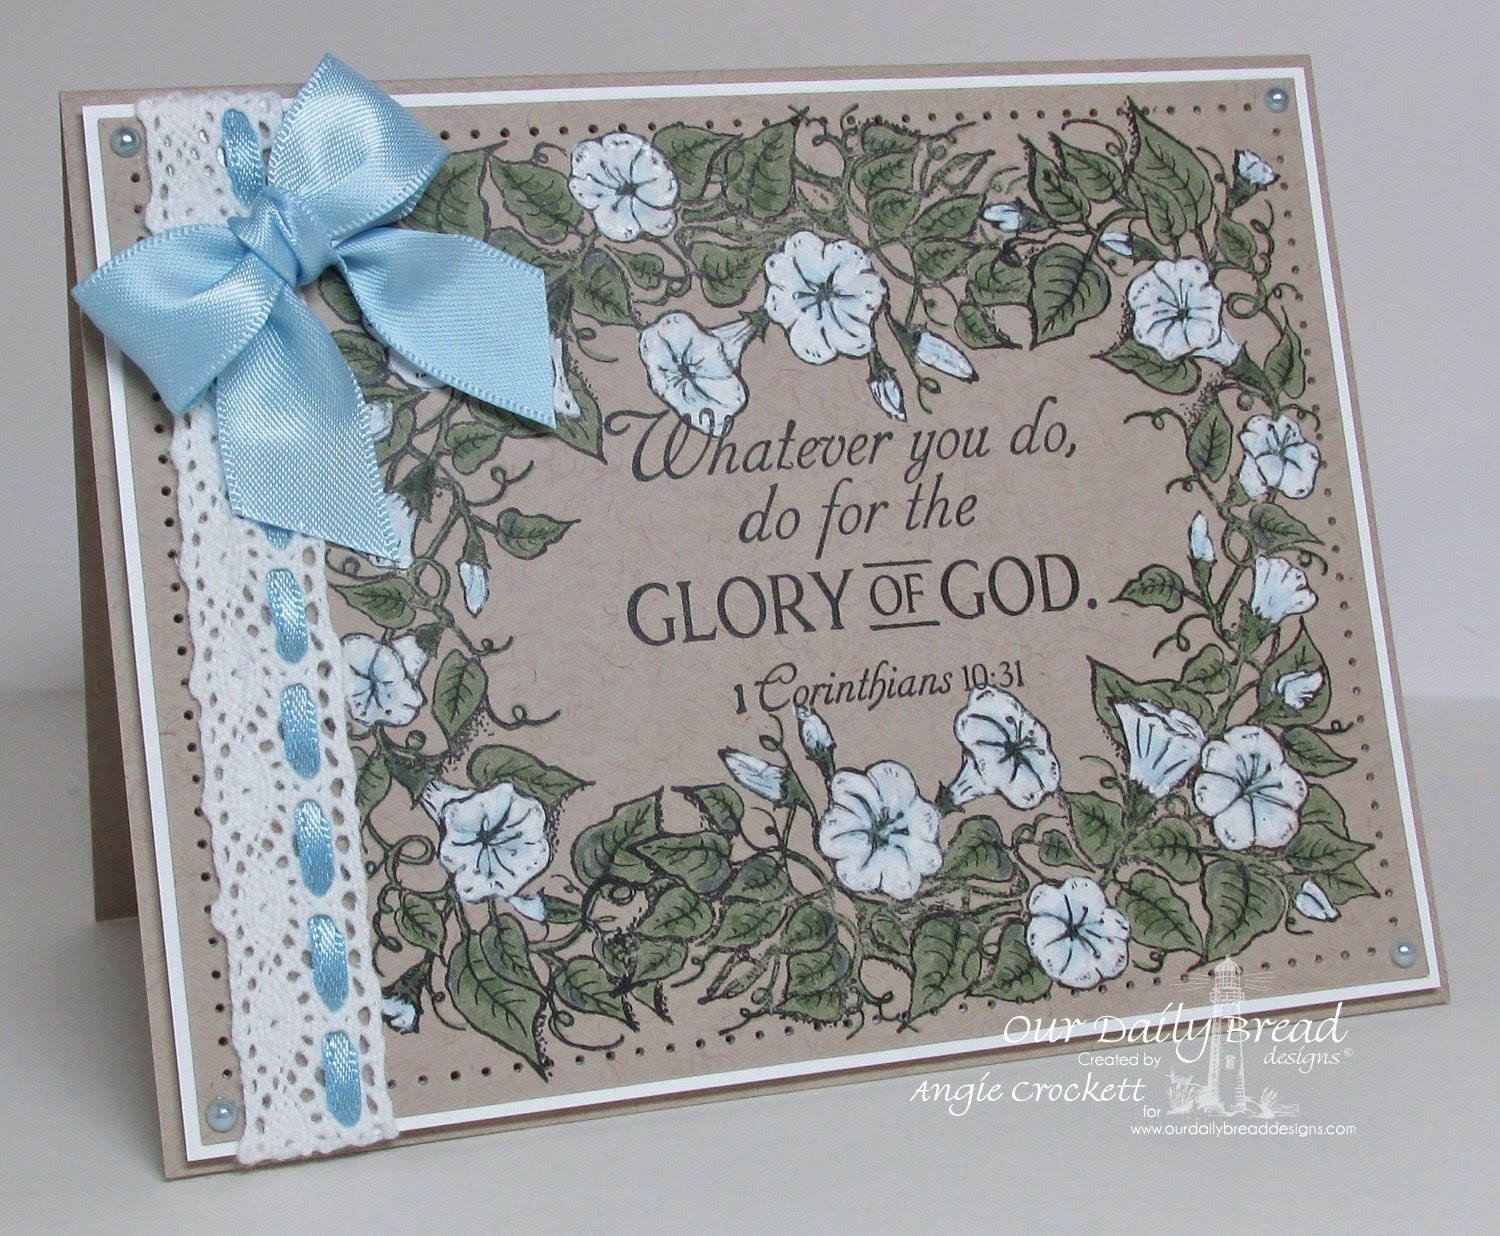 ODBD Glory, Card Designer Angie Crockett